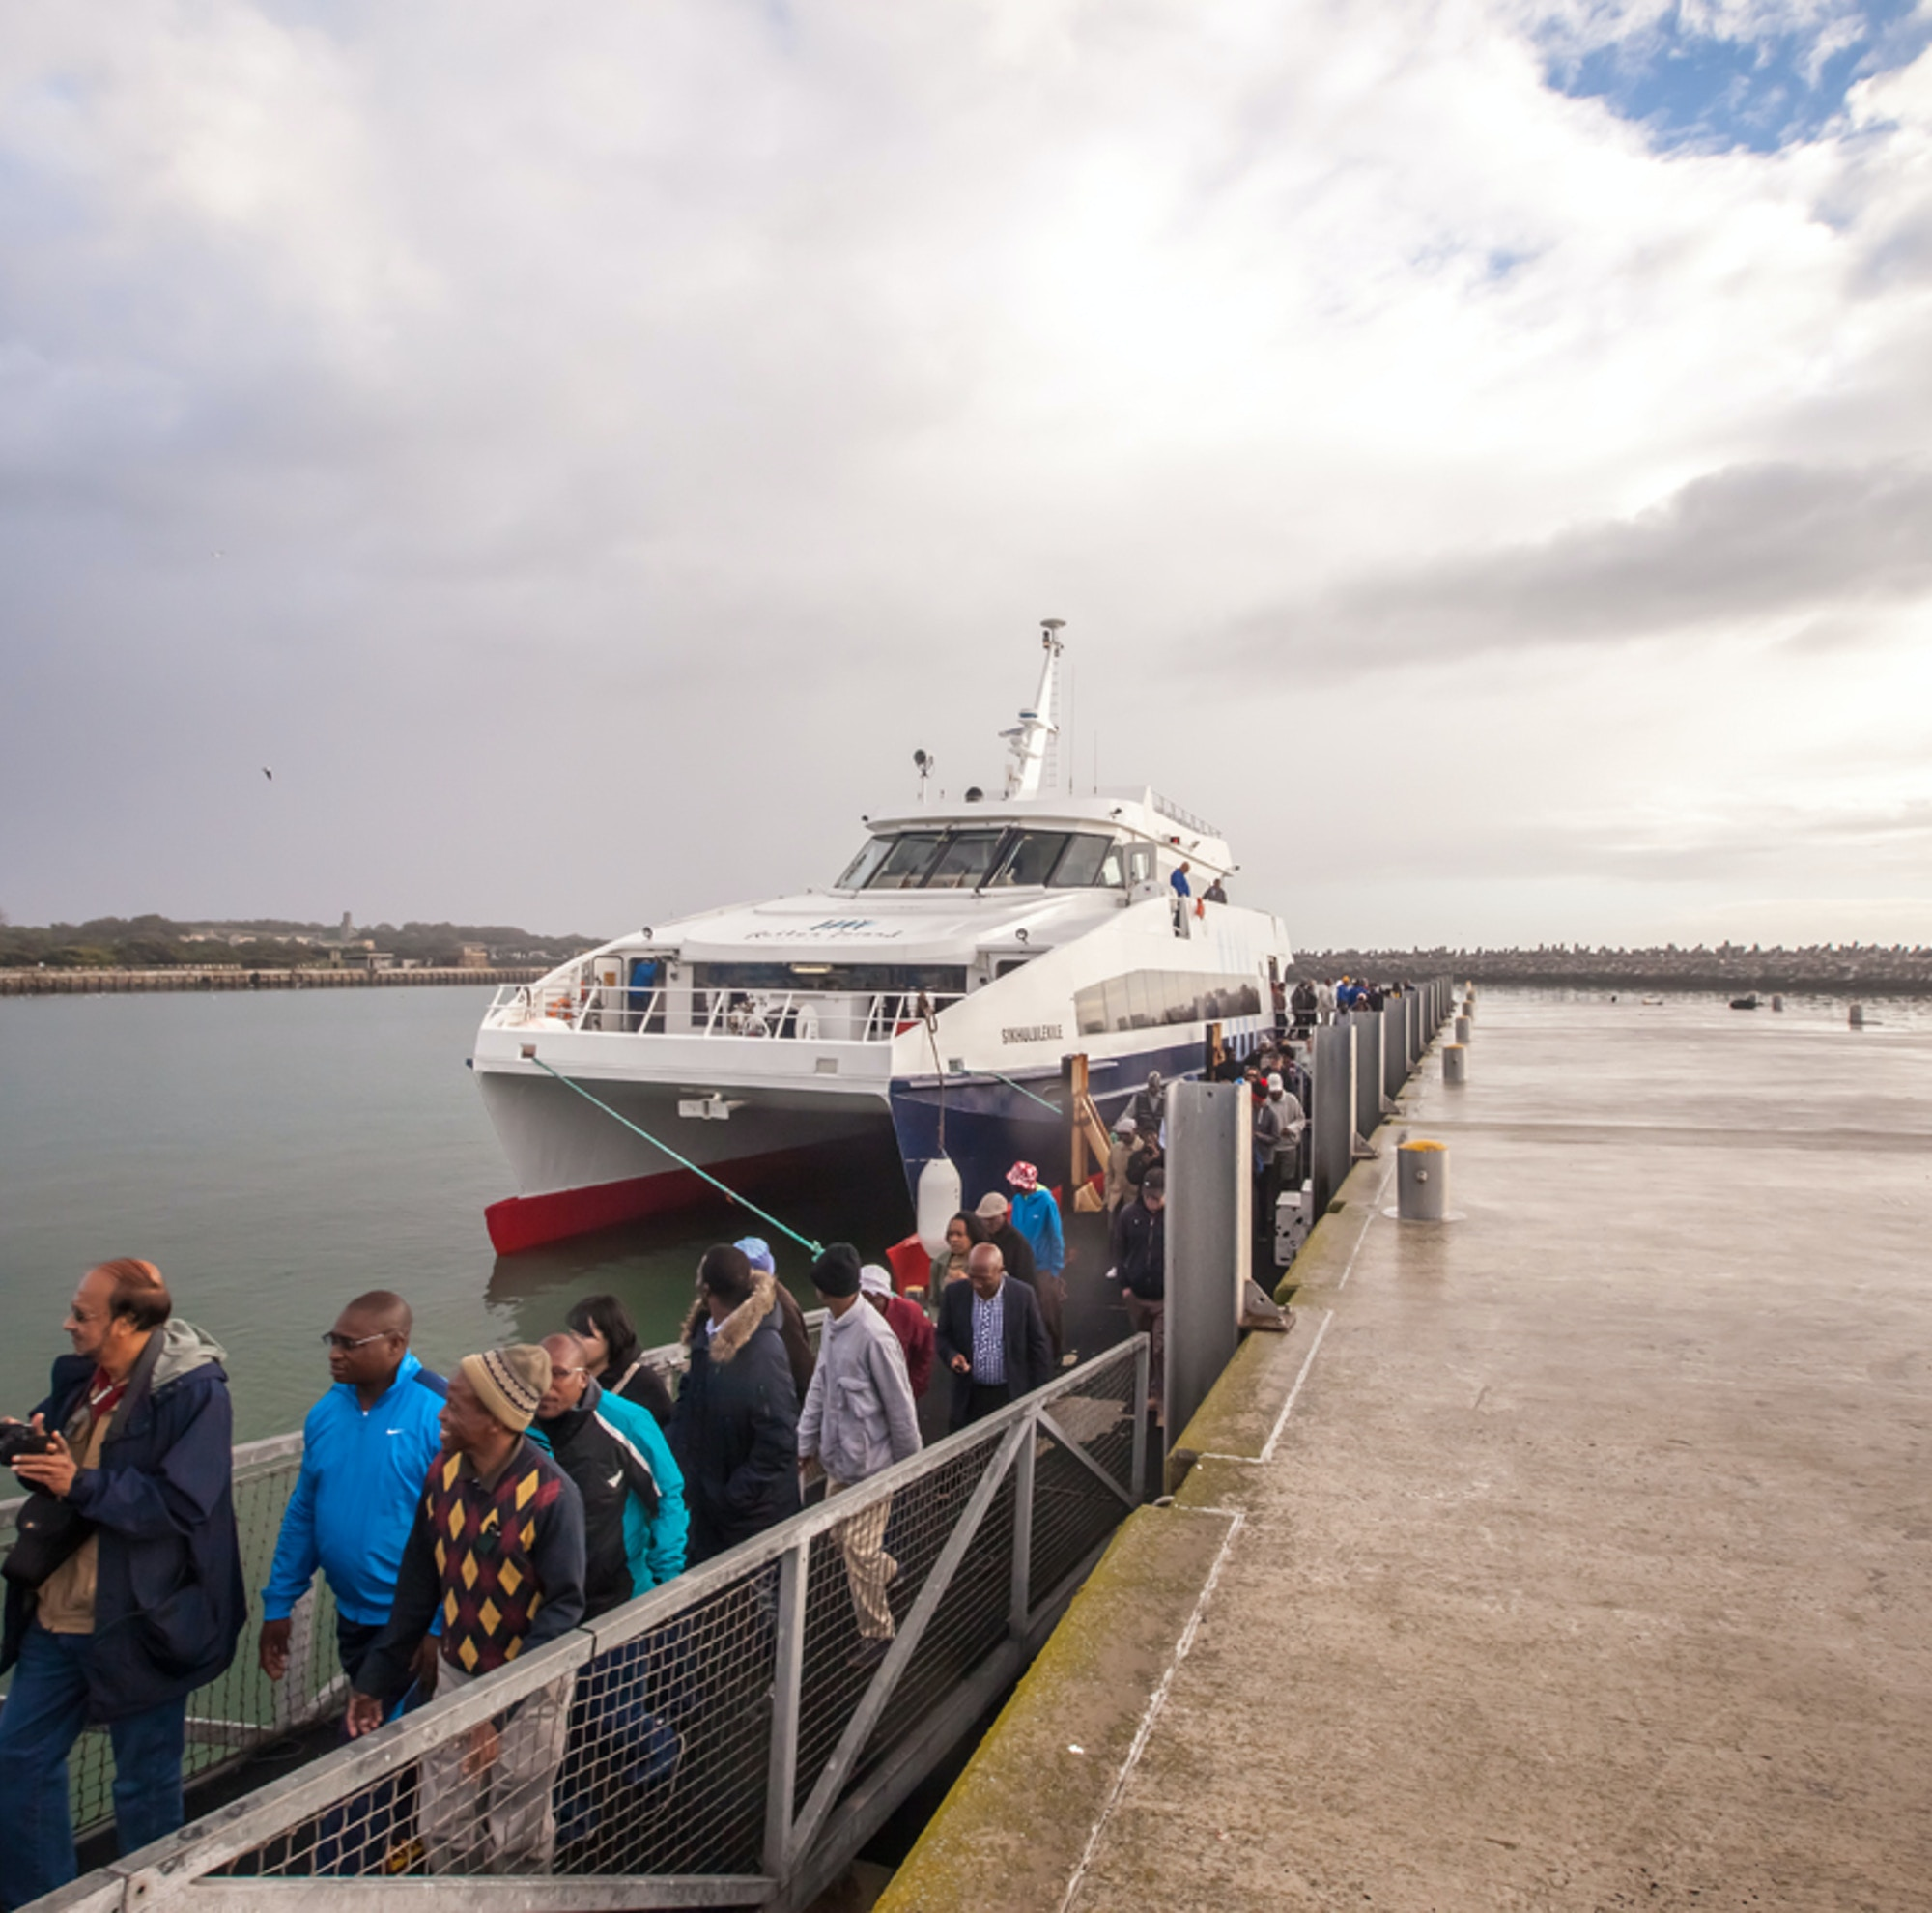 Disembarking at Robben Island